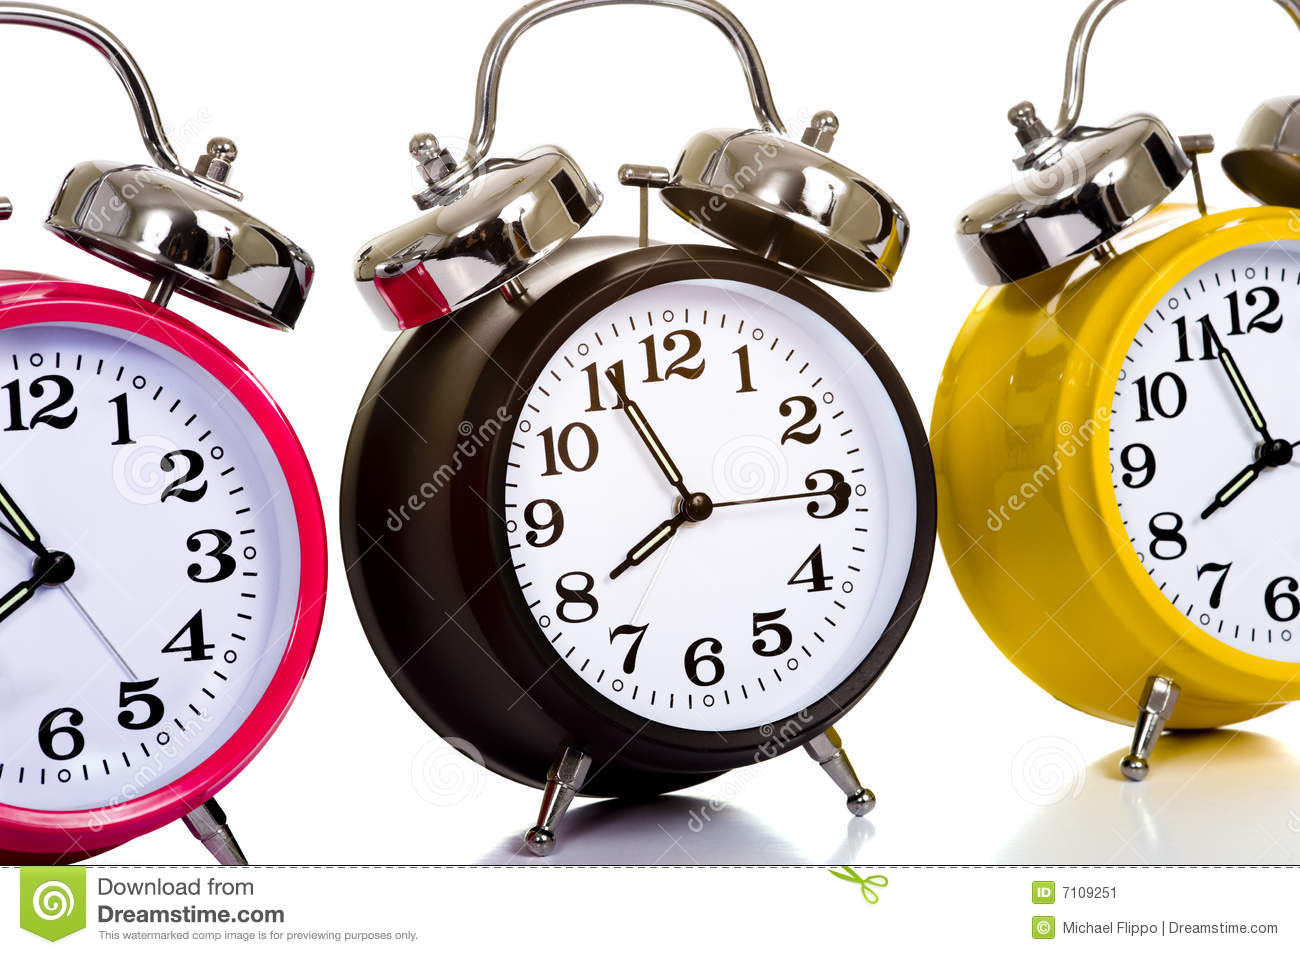 Colorful Clocks on White